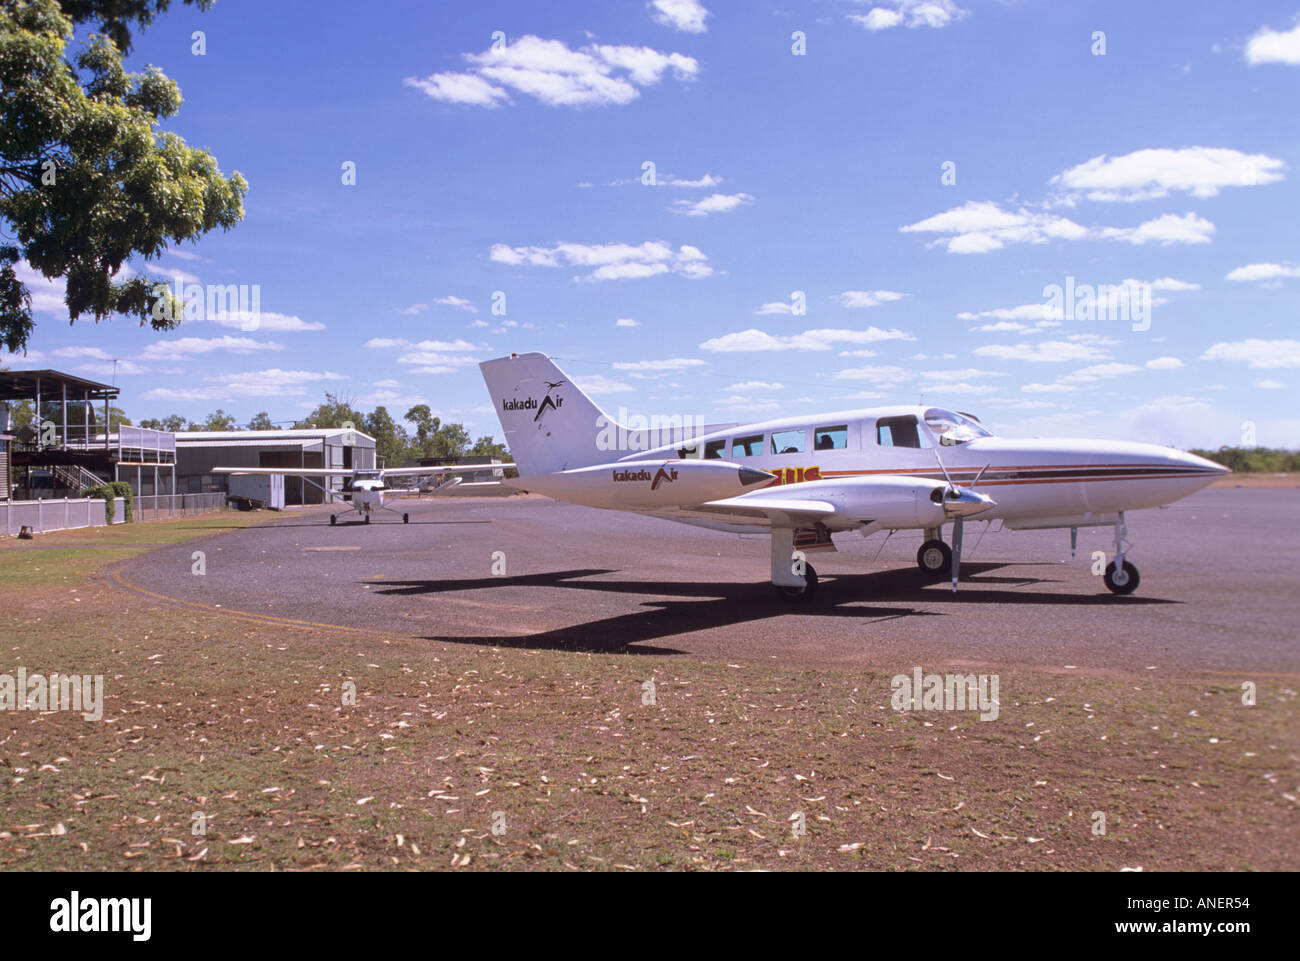 Jabiru Airport Stock Photos & Jabiru Airport Stock Images